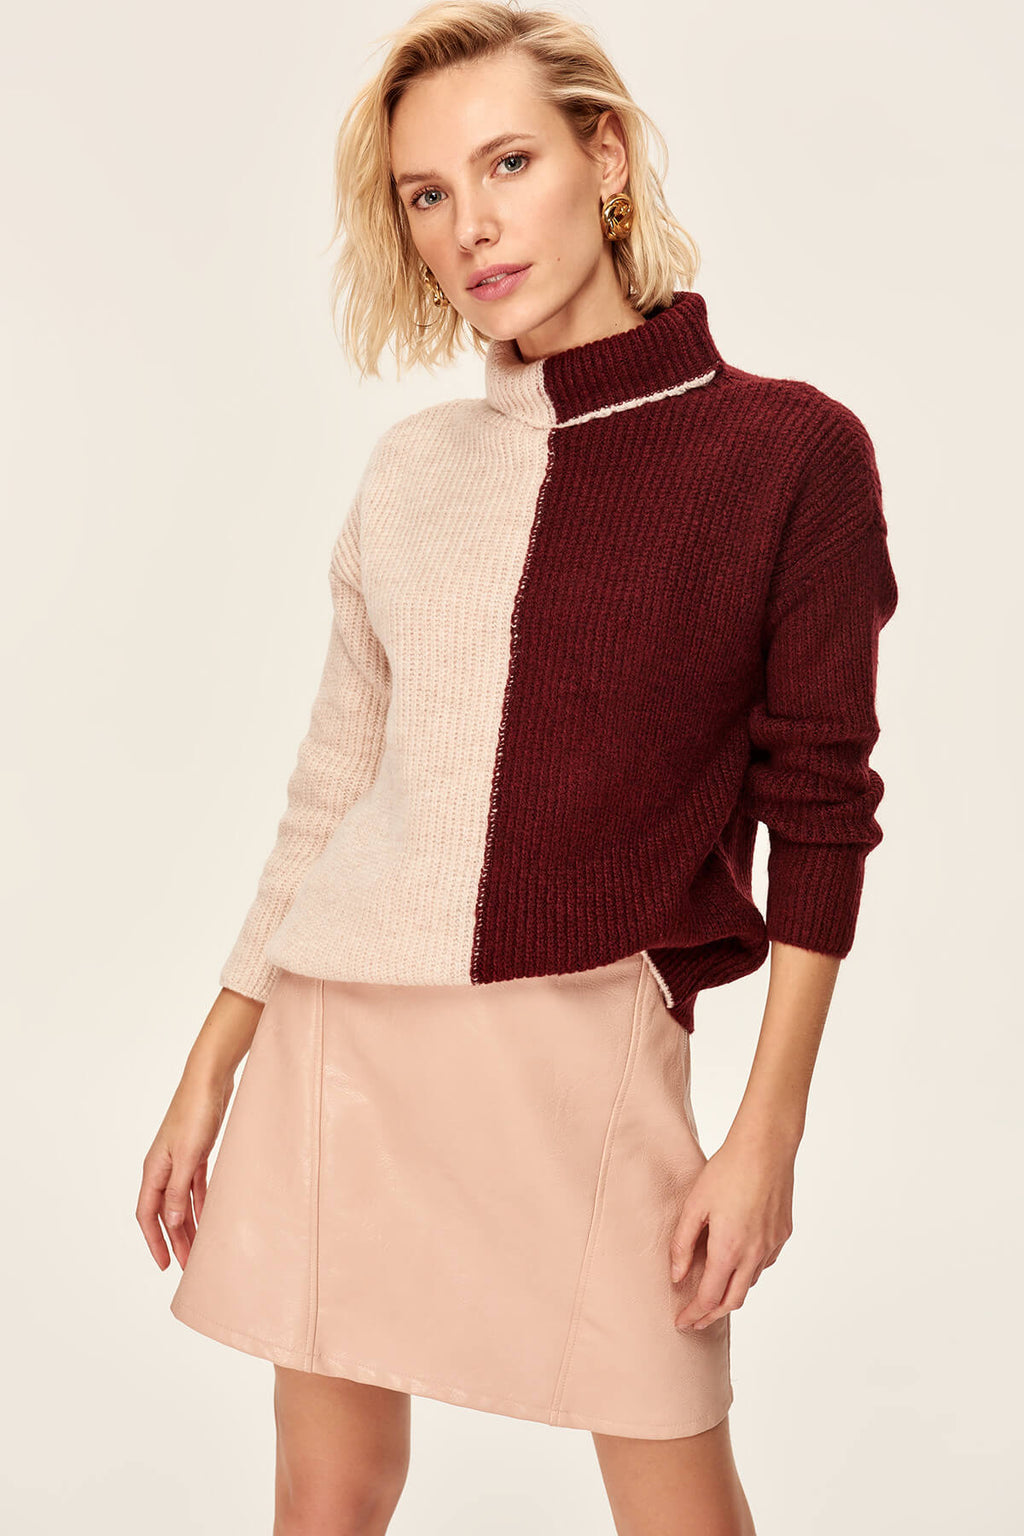 Trendyol Bordeaux Color Block Knitted Sweater TOFAW19LR0278 - sweet-casa.com